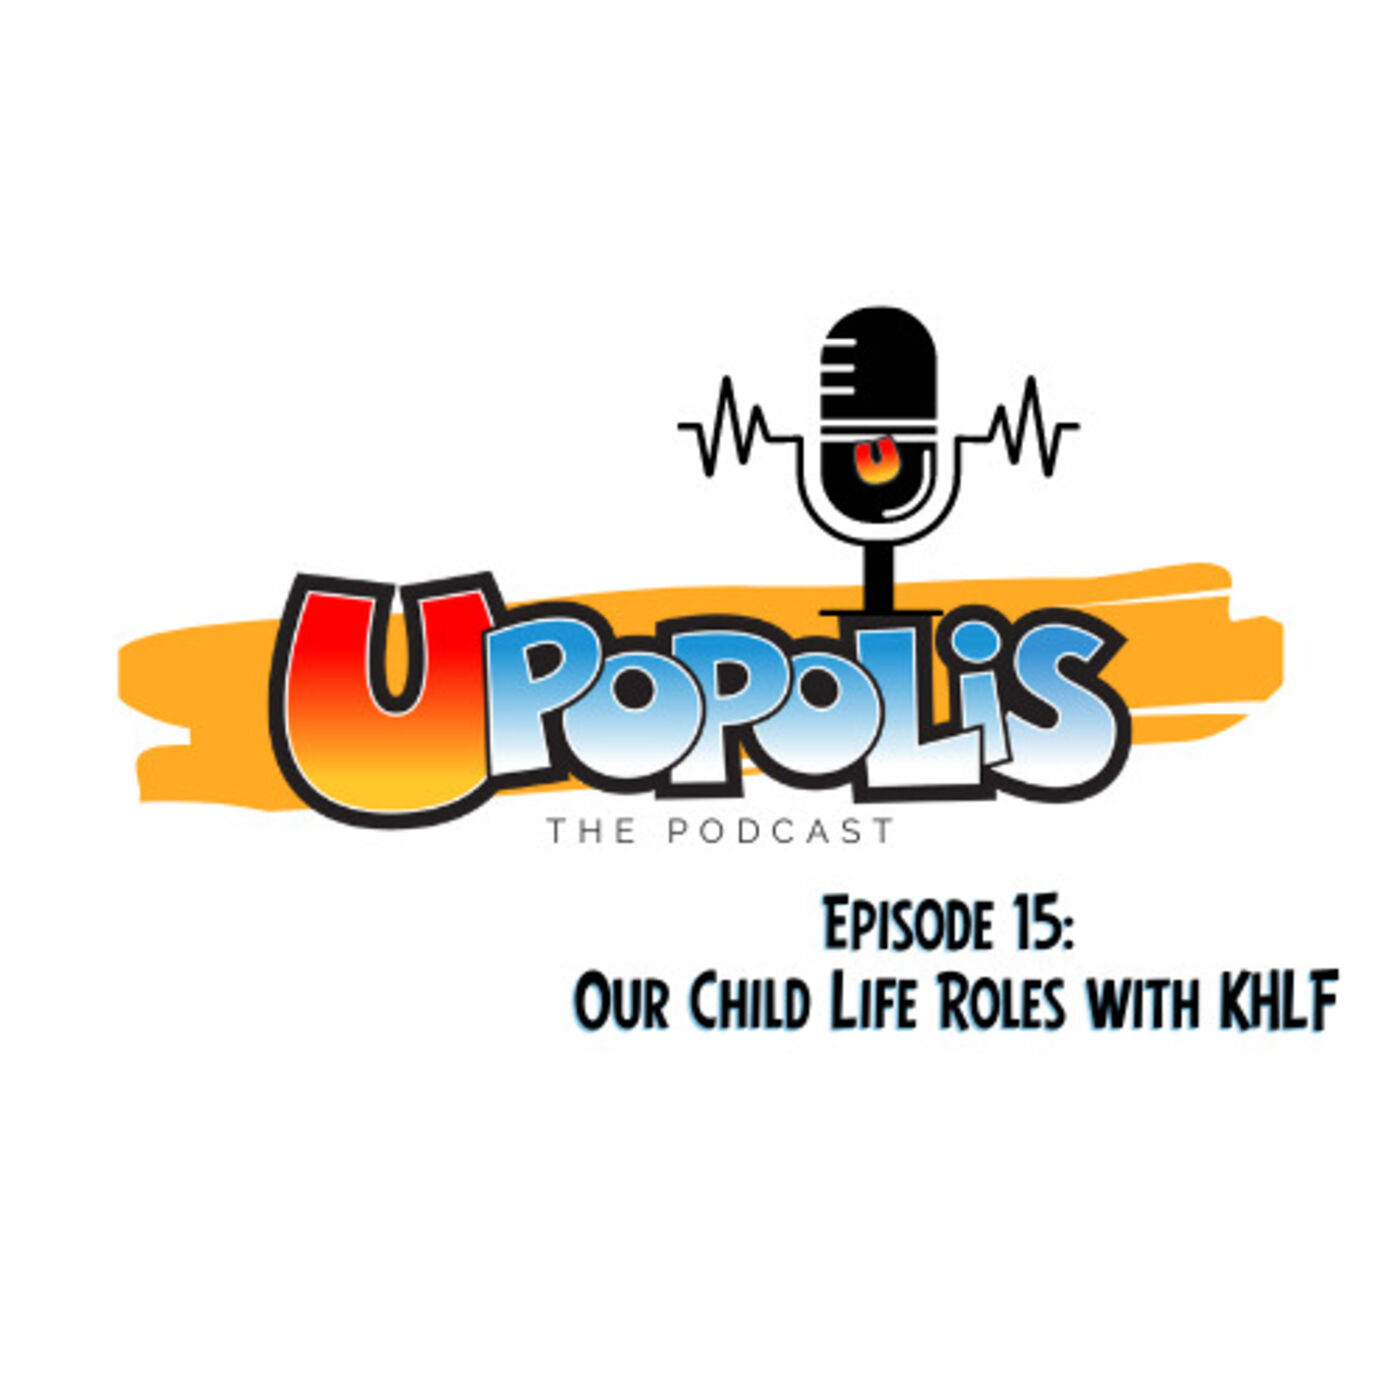 Episode 15: Our Child Life Roles with KHLF